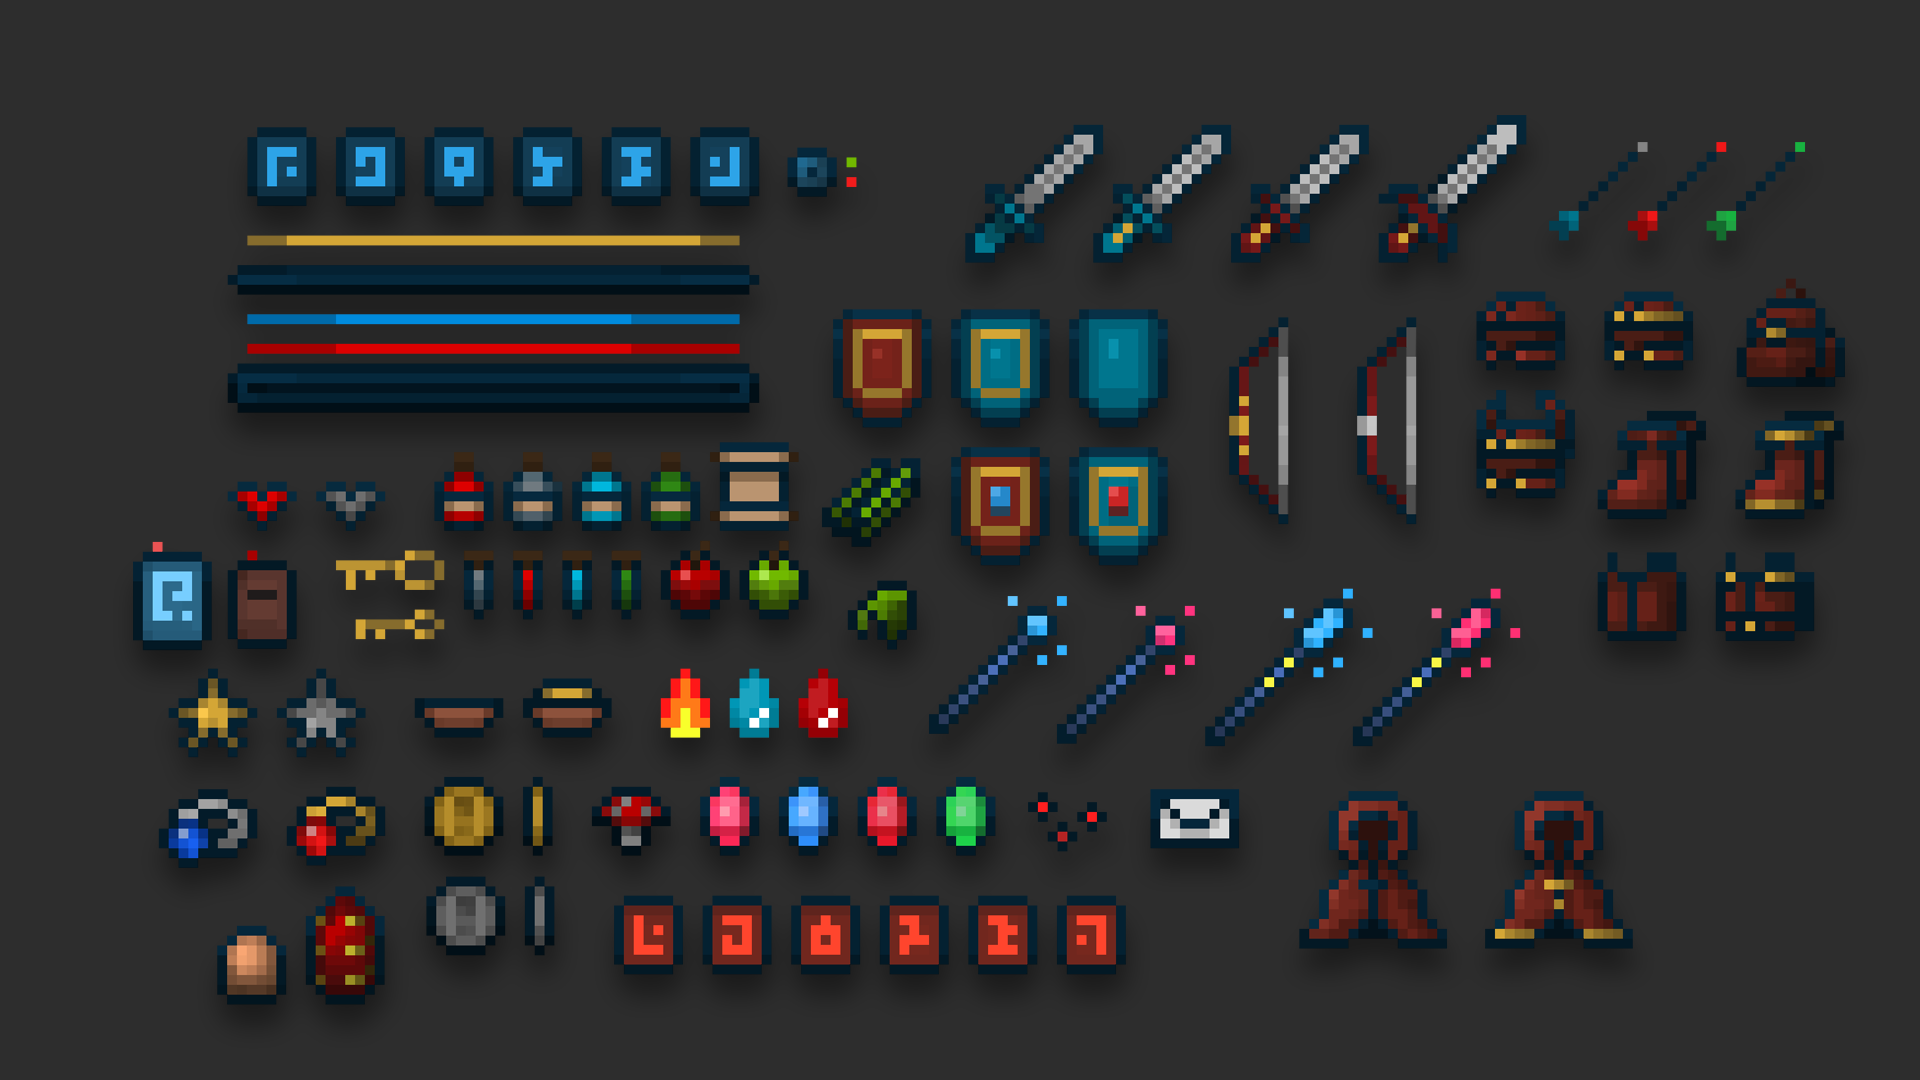 Pixel Art Pack by Wiiolis in 2D Assets - UE4 Marketplace